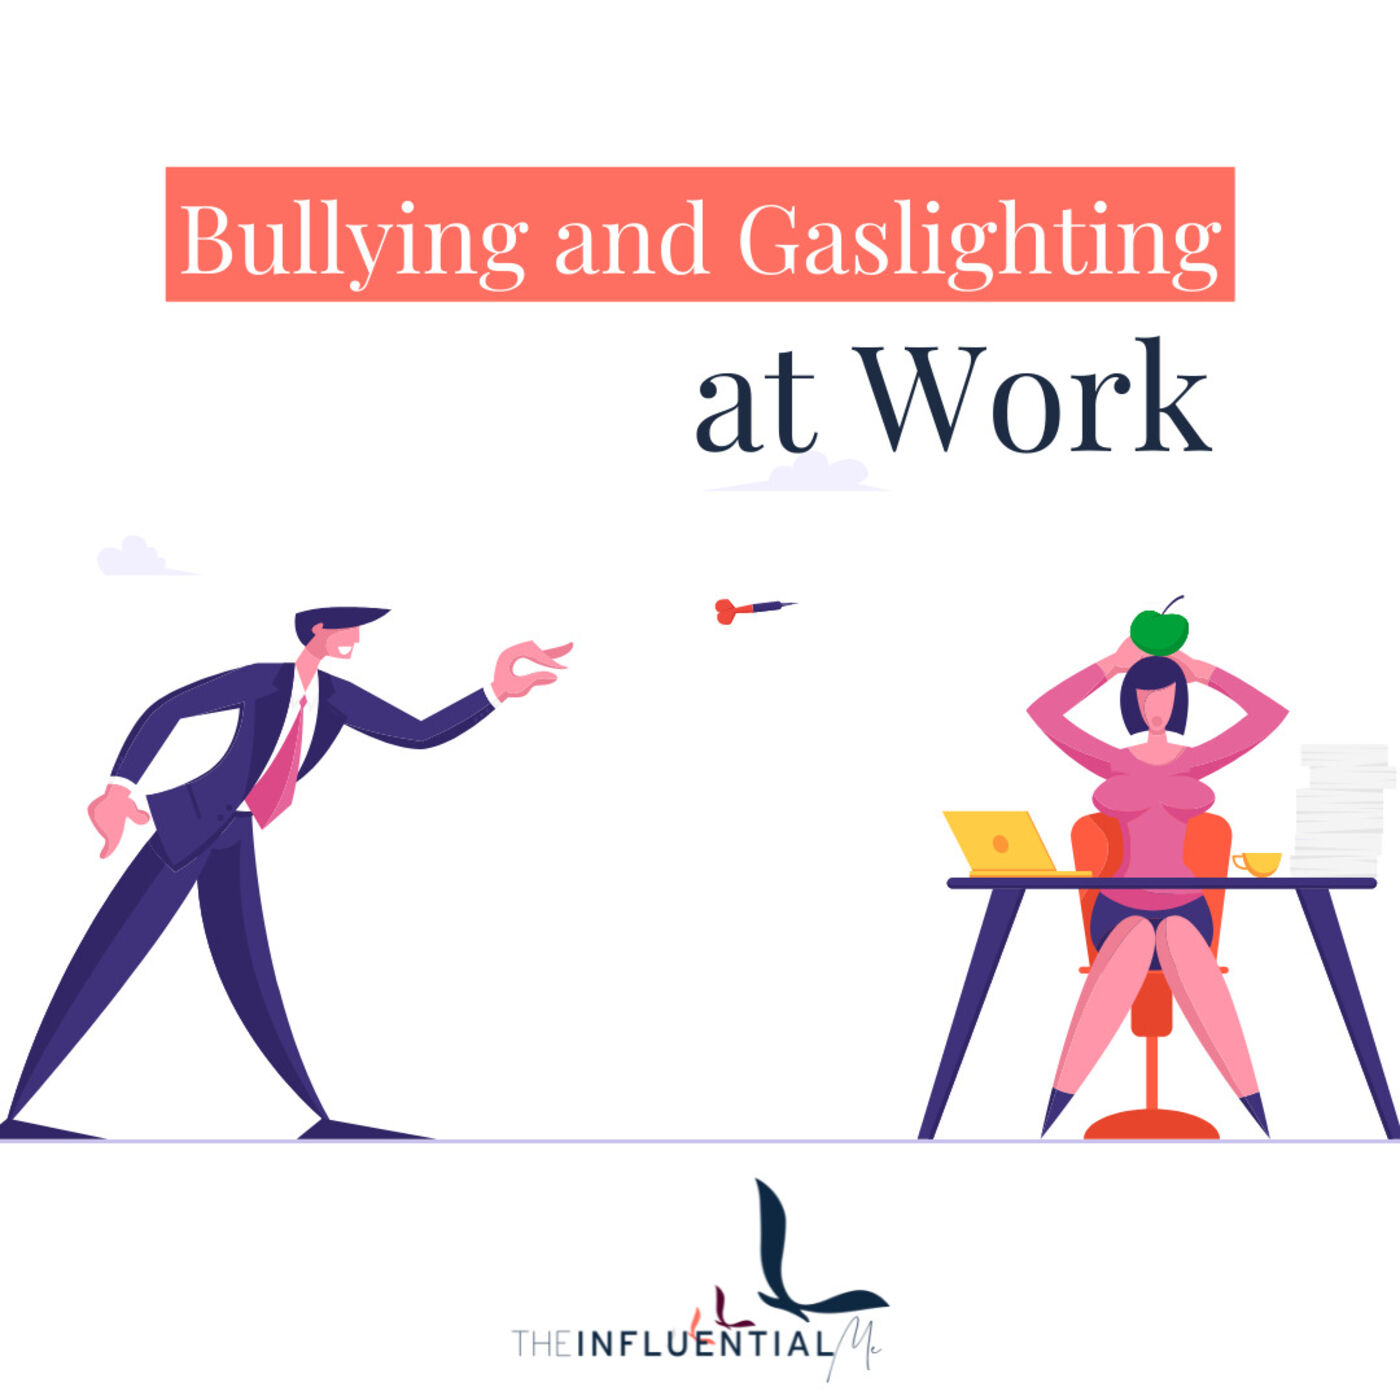 How to Deal Bullying and Gaslighting at Workplace